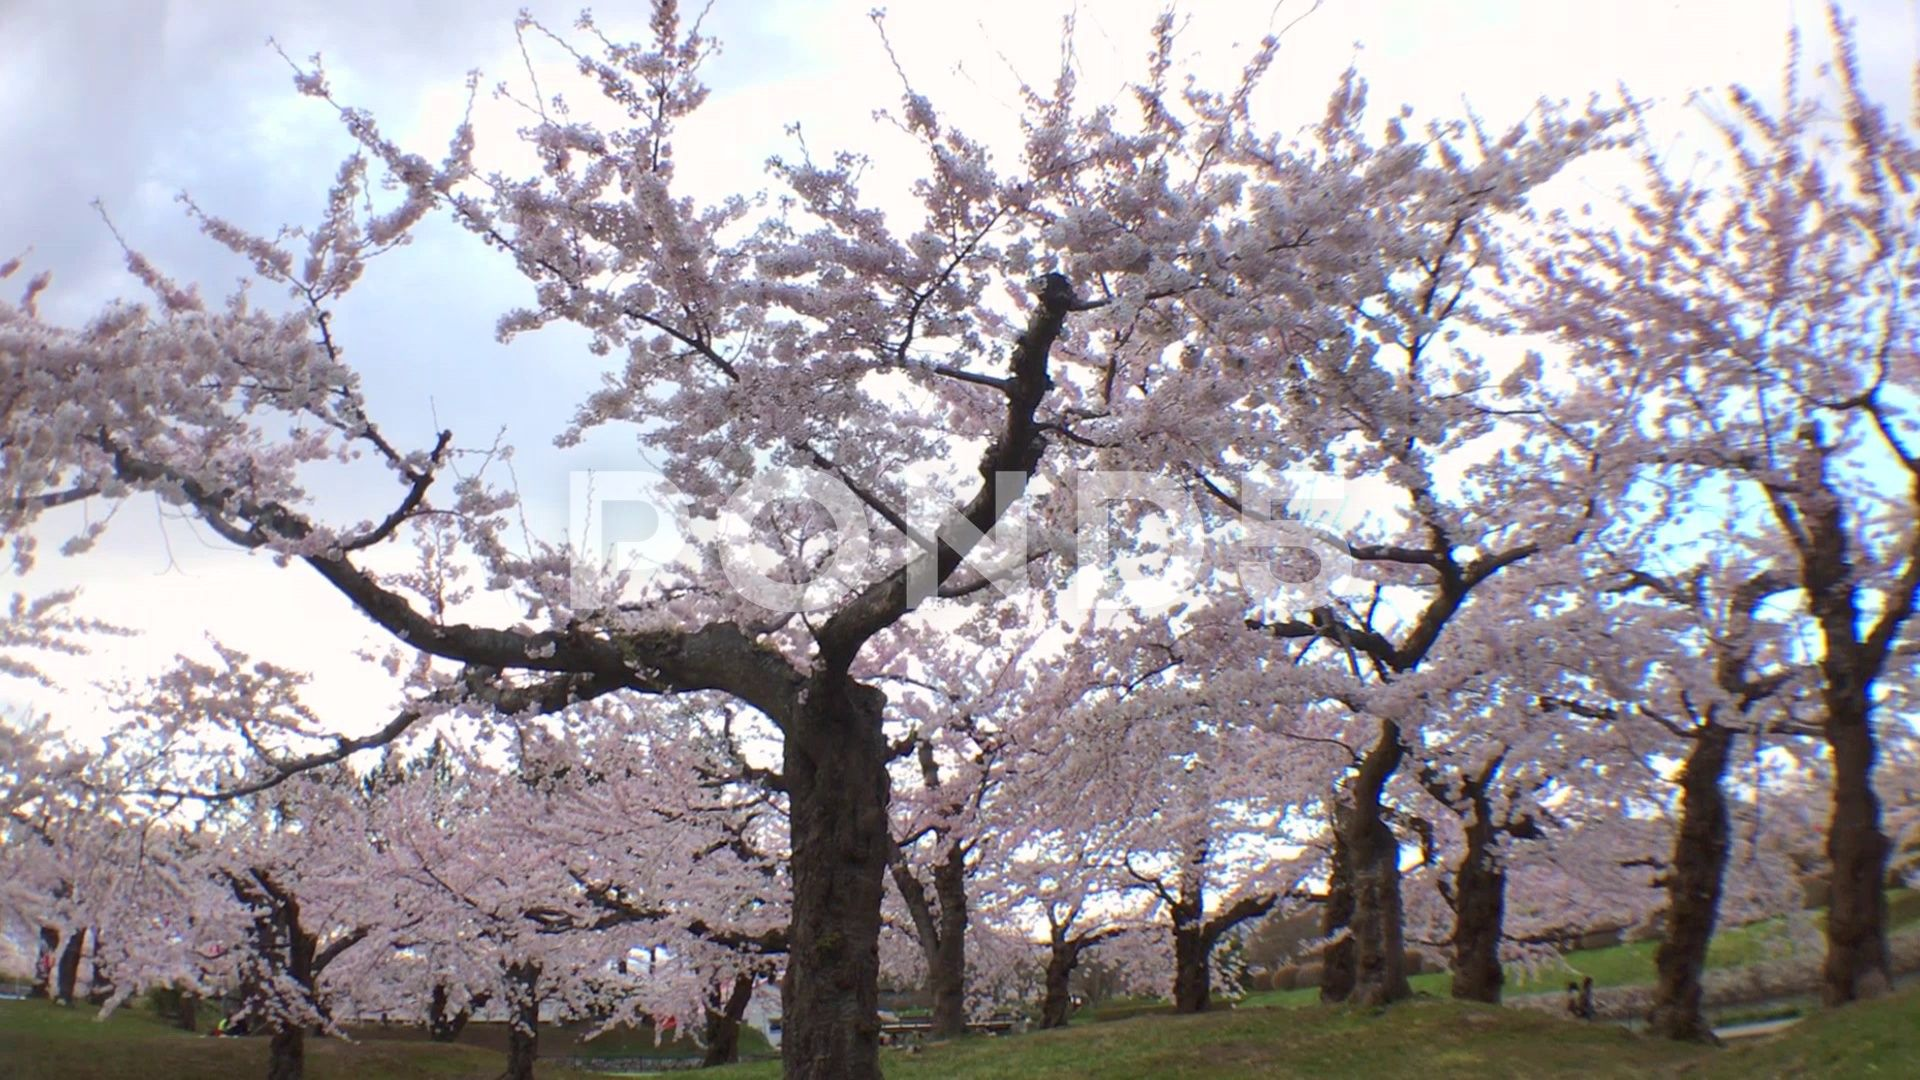 People Strolling In Goryokaku Park Under Full Bloom Cherry Blossom Trees Stock Footage Ad Park Full Goryokaku People Cherry Blossom Tree Blossom Trees Park